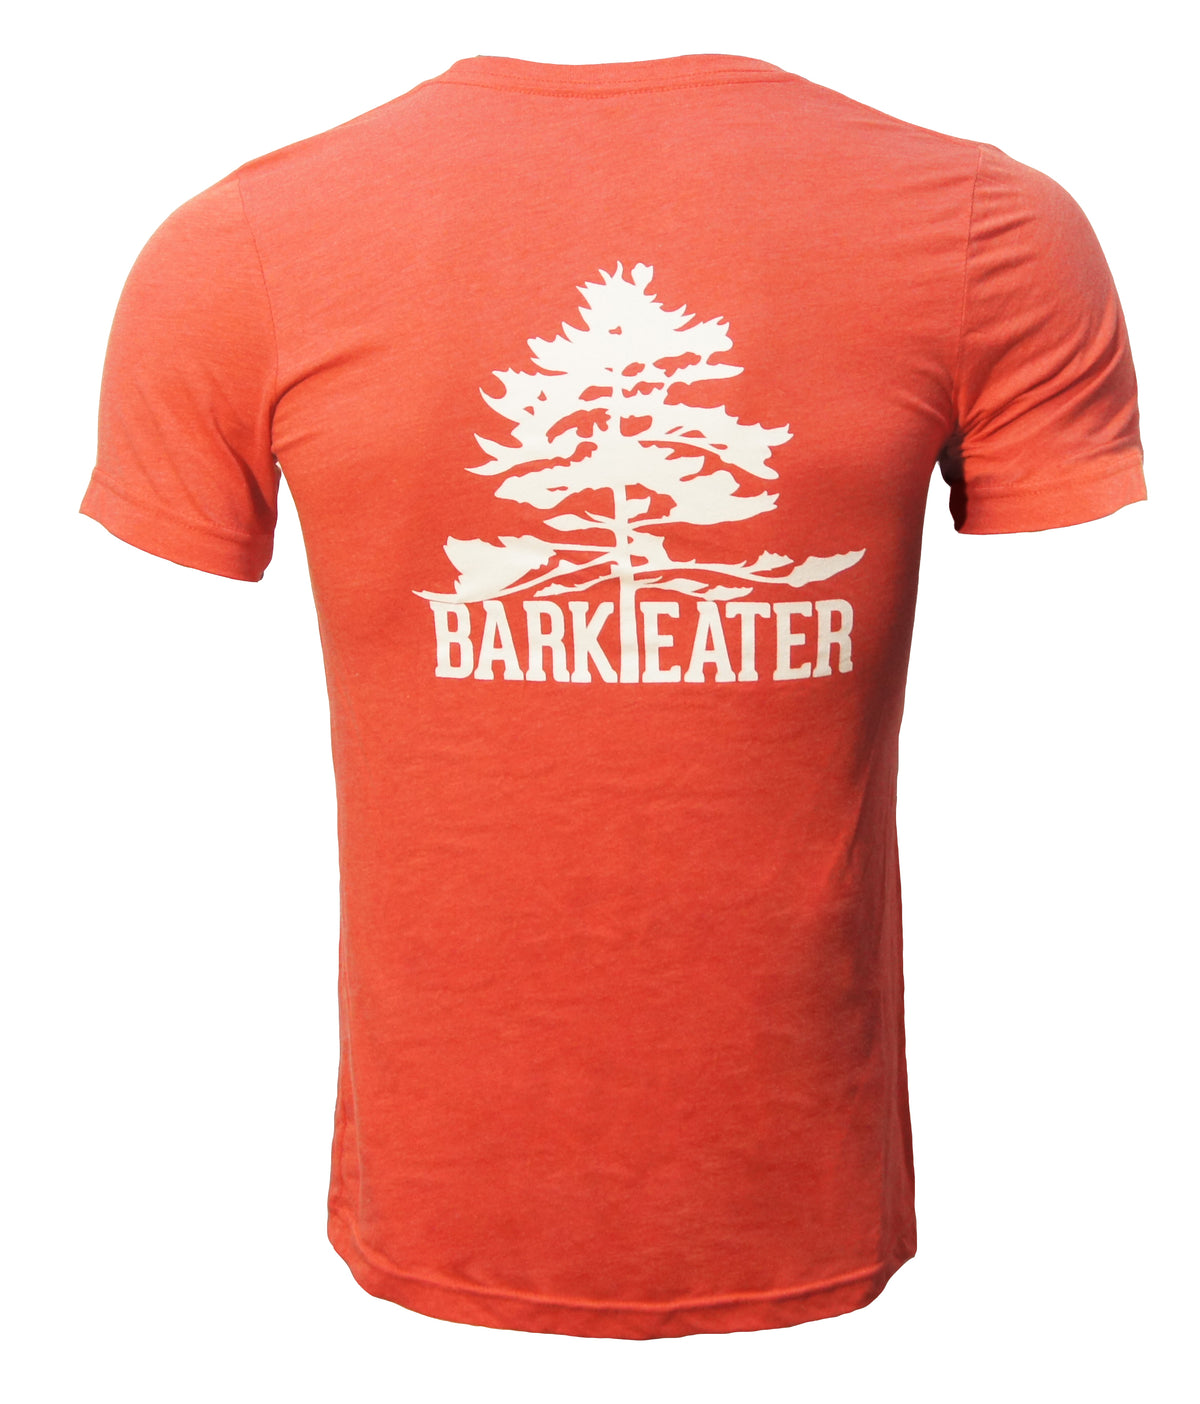 The Bark Eater Tee Red